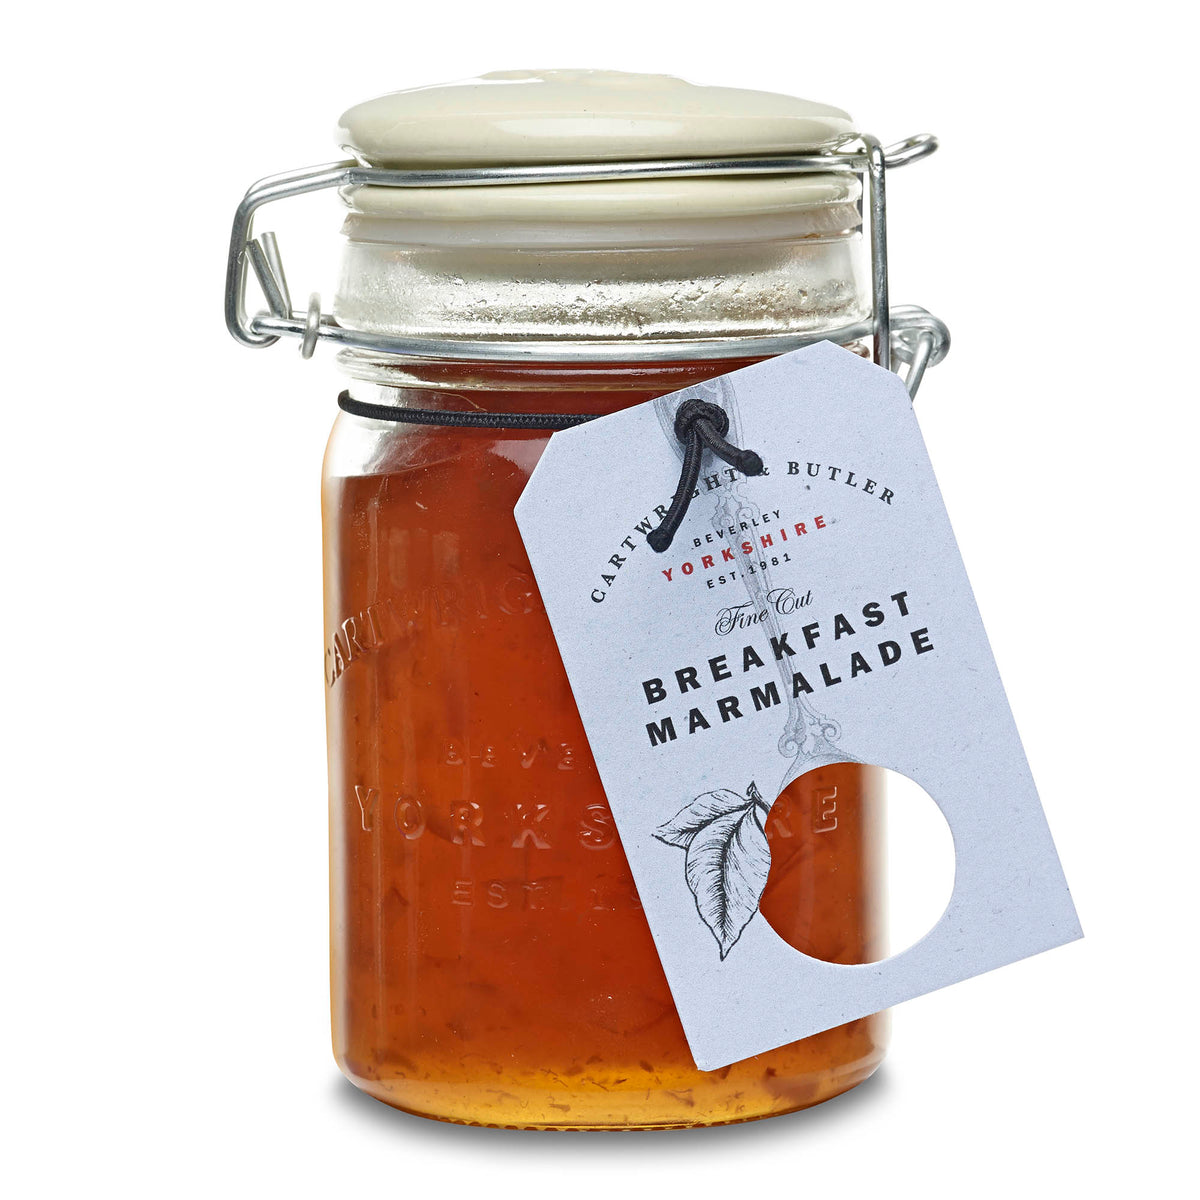 C&B Fine Cut English Breakfast Marmalade